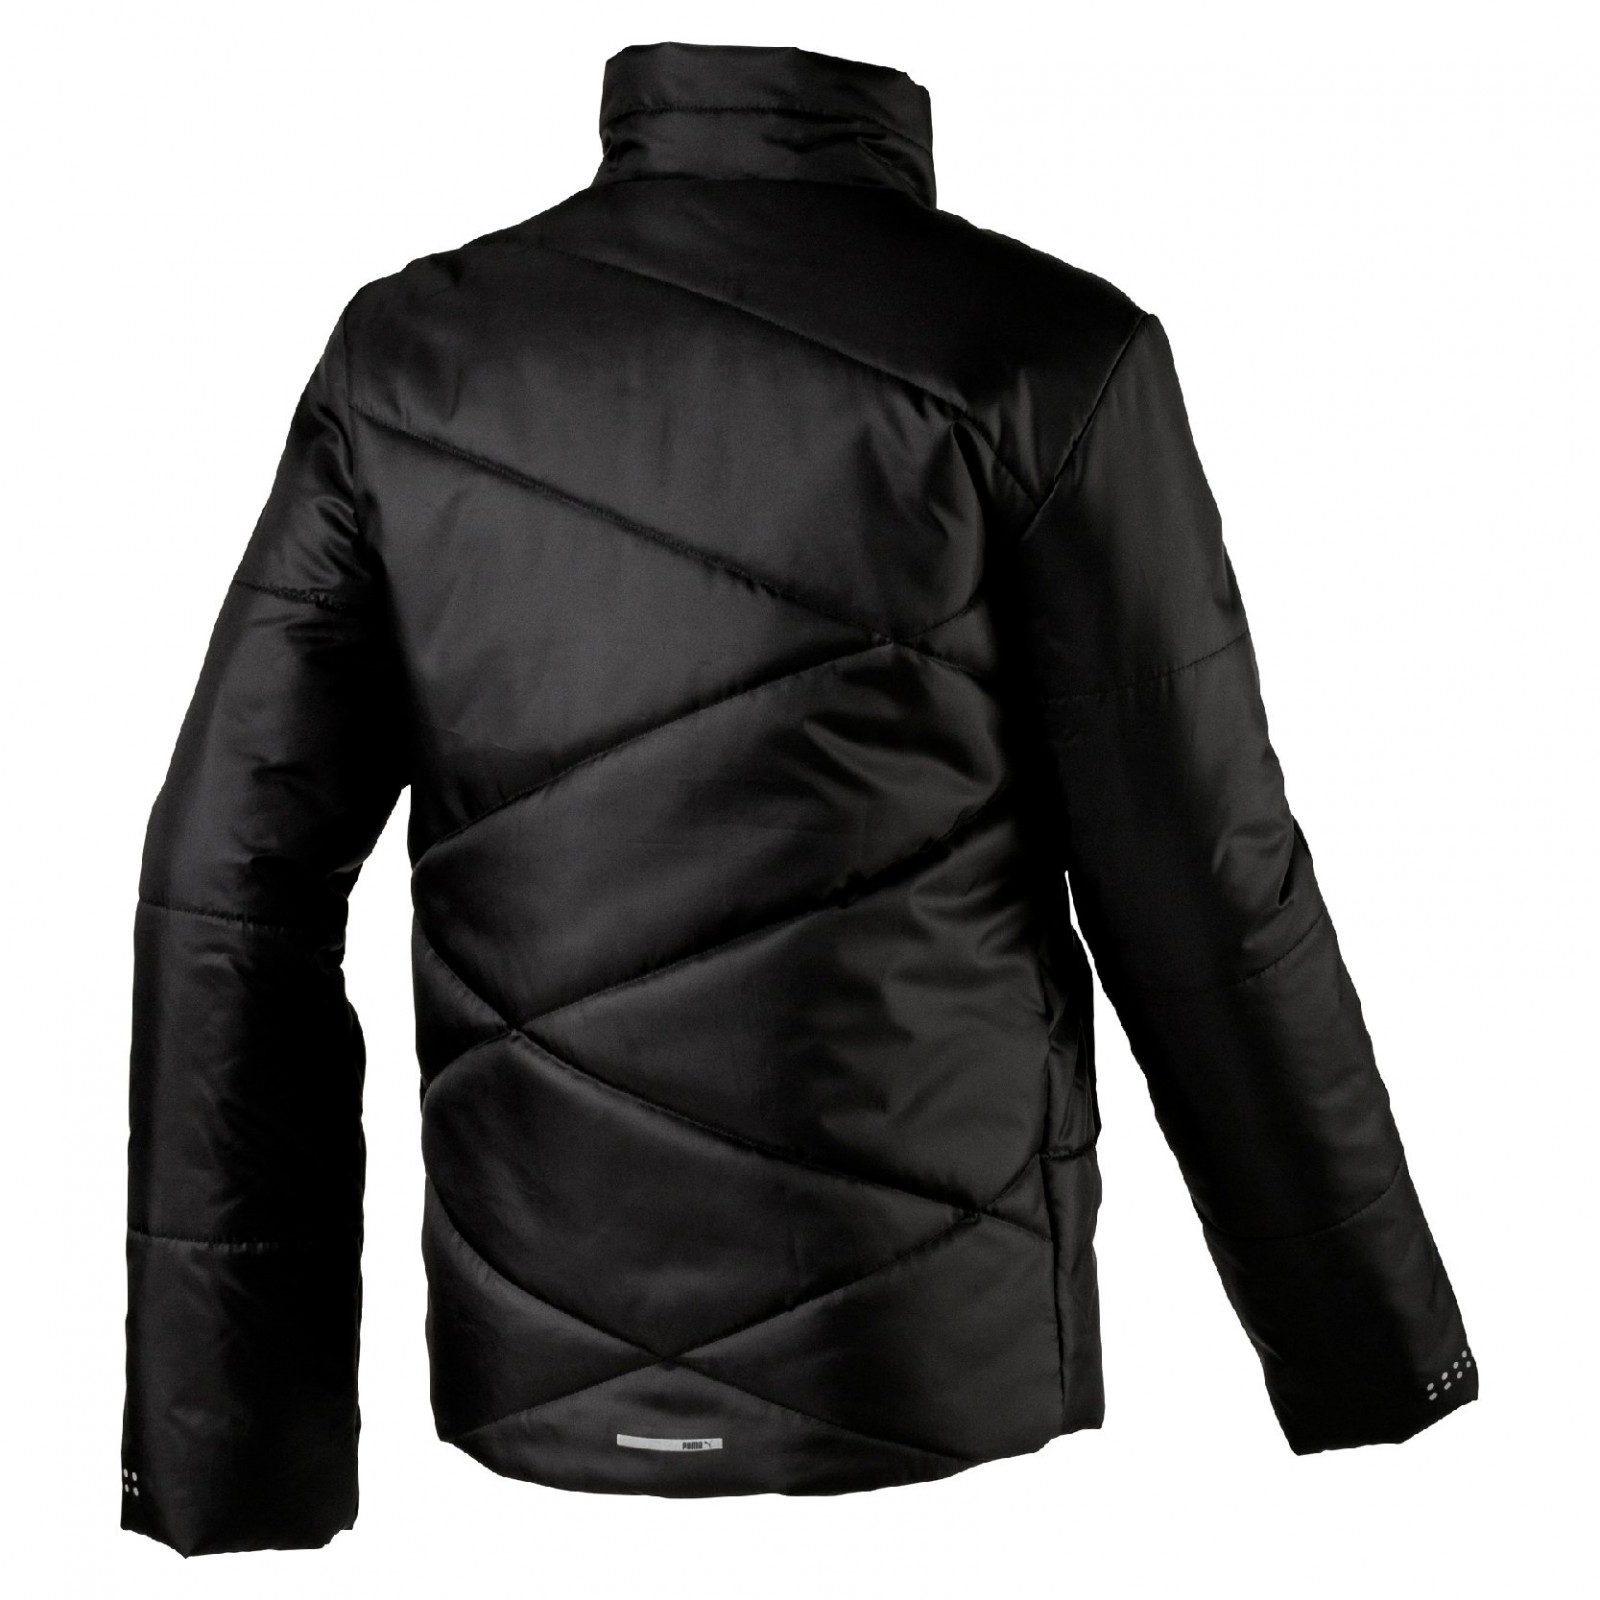 ESS PADDED JACKET B Puma Black